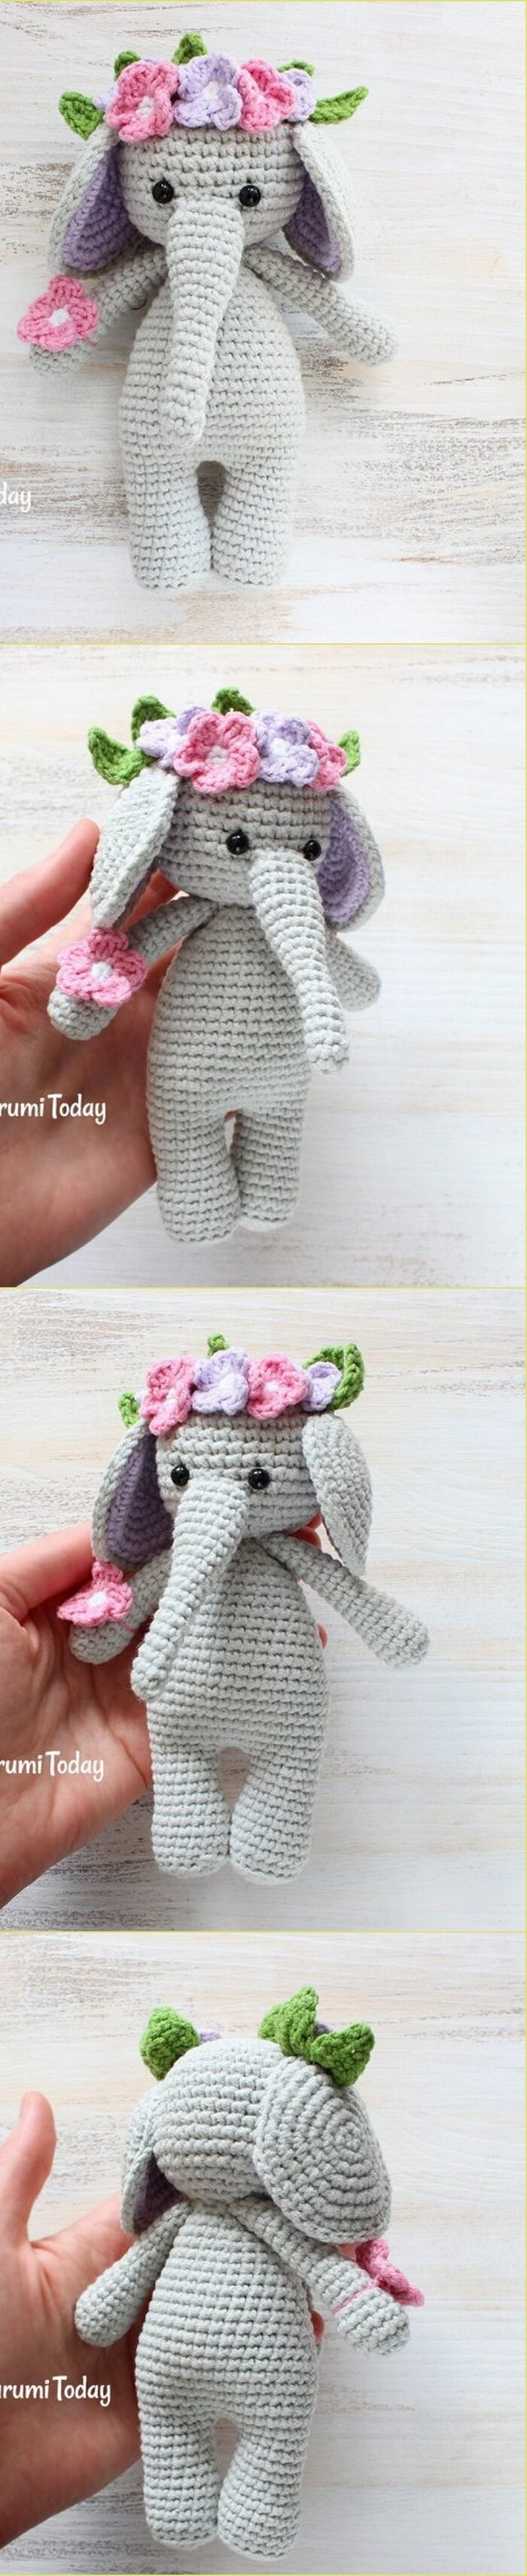 Crochet toys Ideas